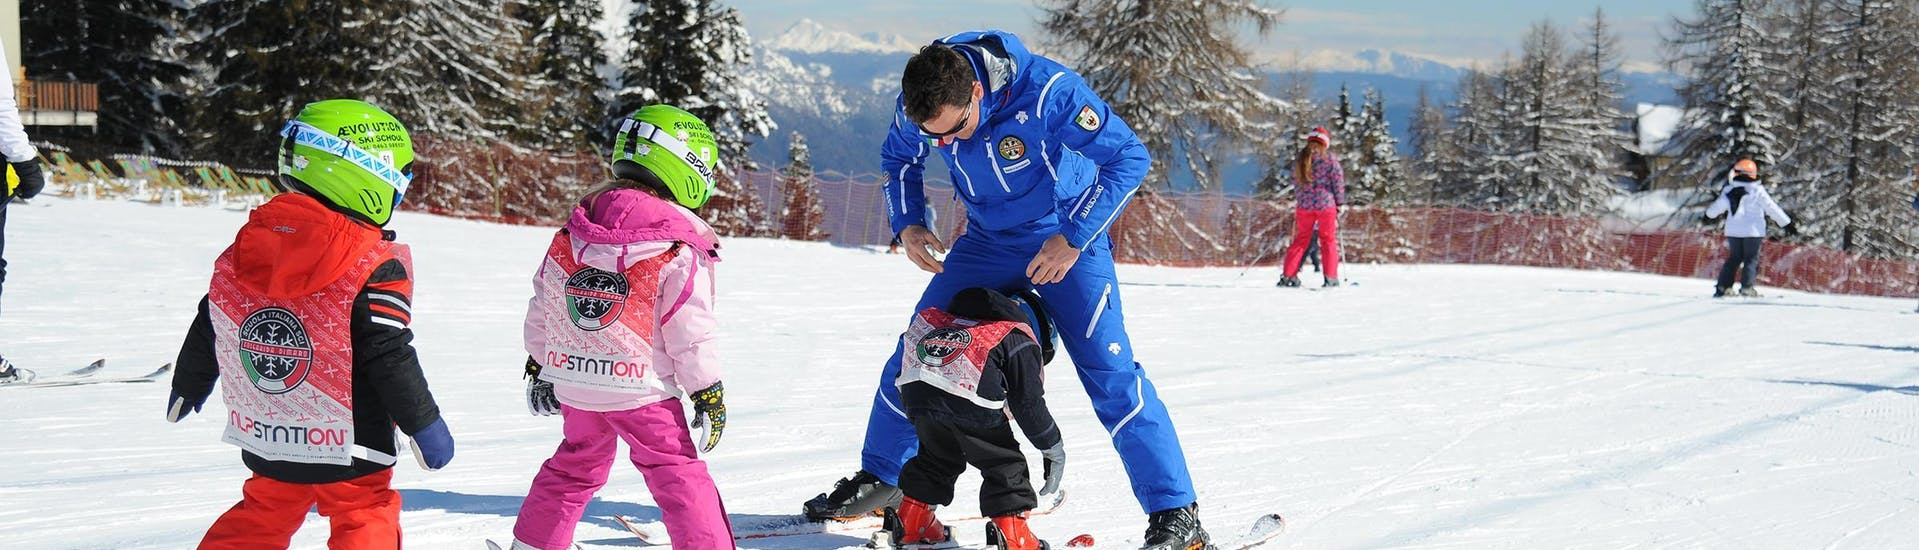 Kids Ski Lessons (4-14 years) - With Experience of Folgarida Dimaro Ski School are taking place, the children are training on the slopes of Val di Sole with the ski instructor.